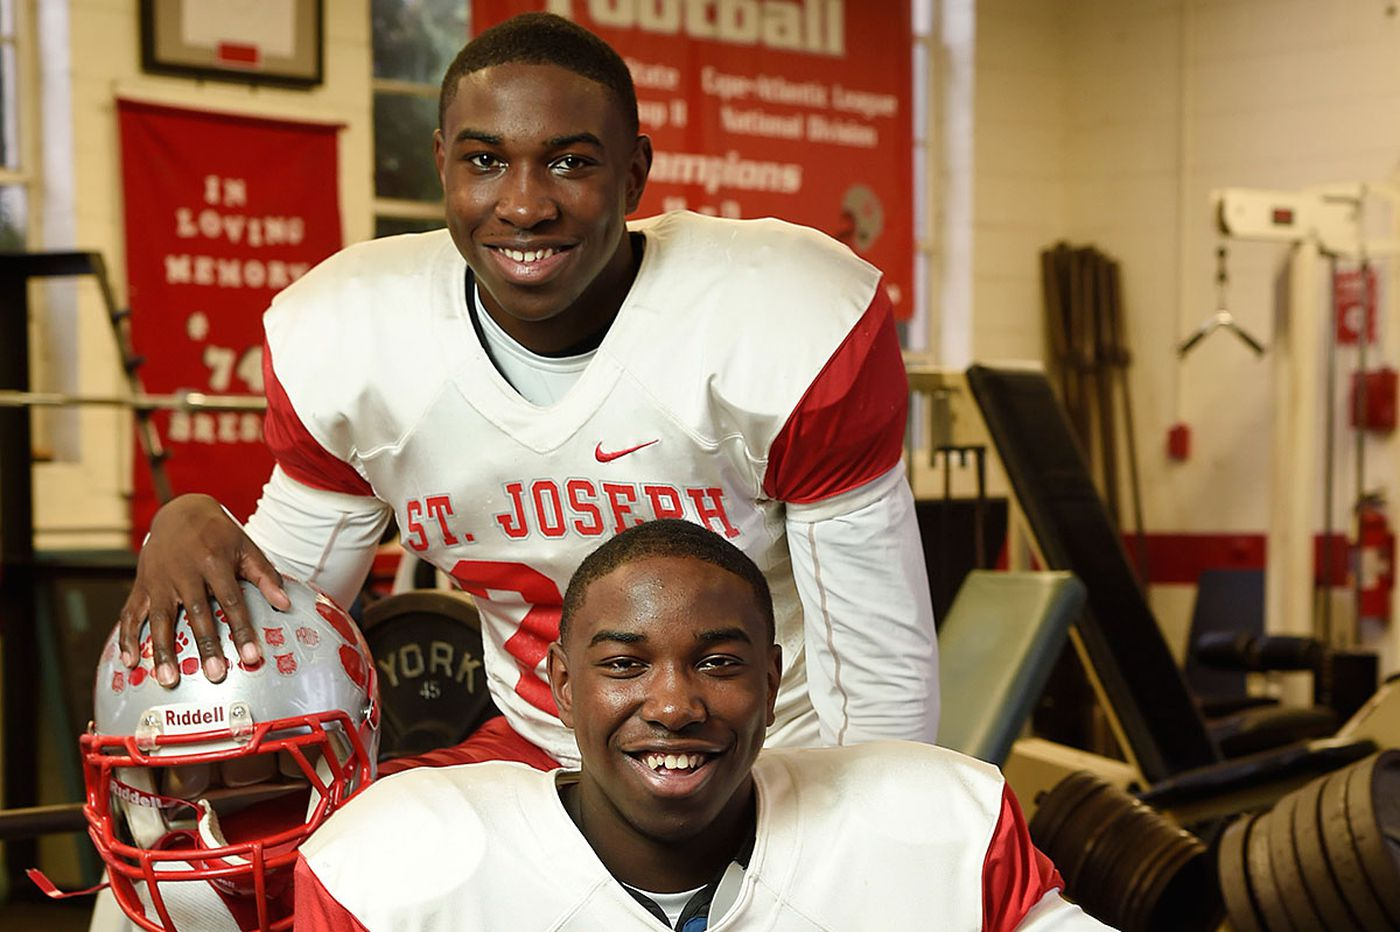 Horne twins, beset by injuries, look to finish on top